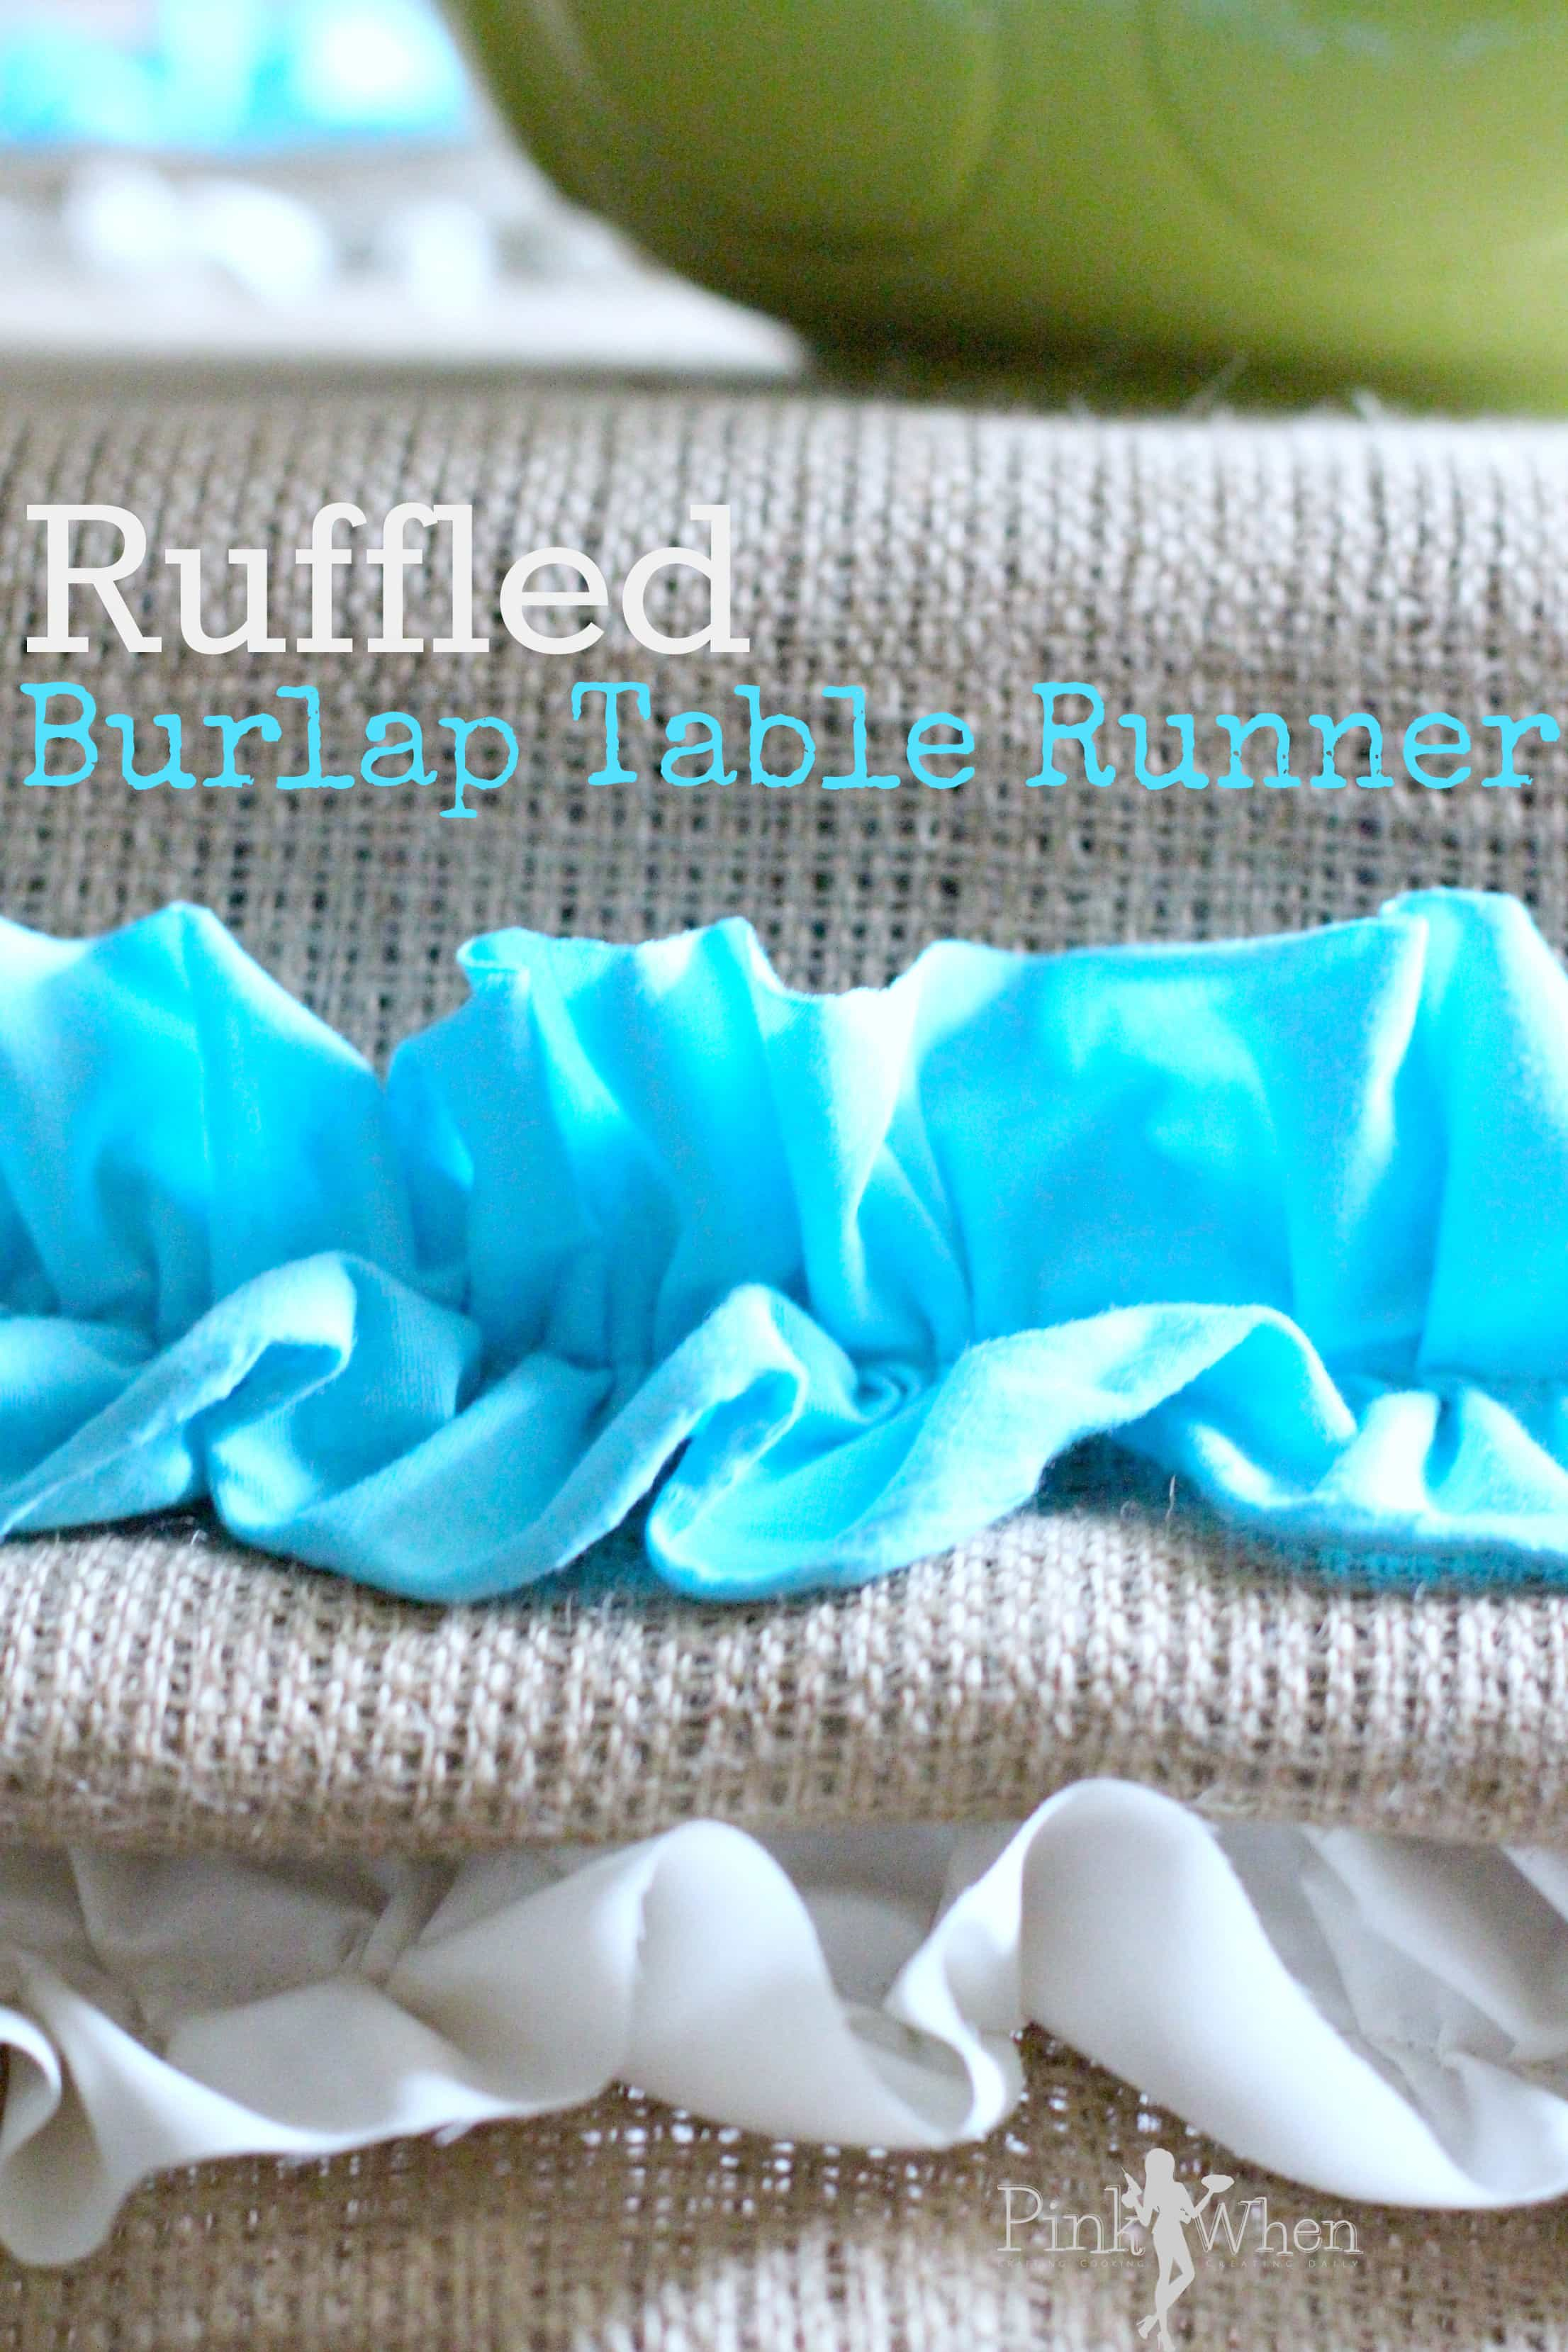 I Had To Brighten My Breakfast Room Up A Little More Than Usual, So I  Created This Fun Burlap Spring Ruffled Table Runner.